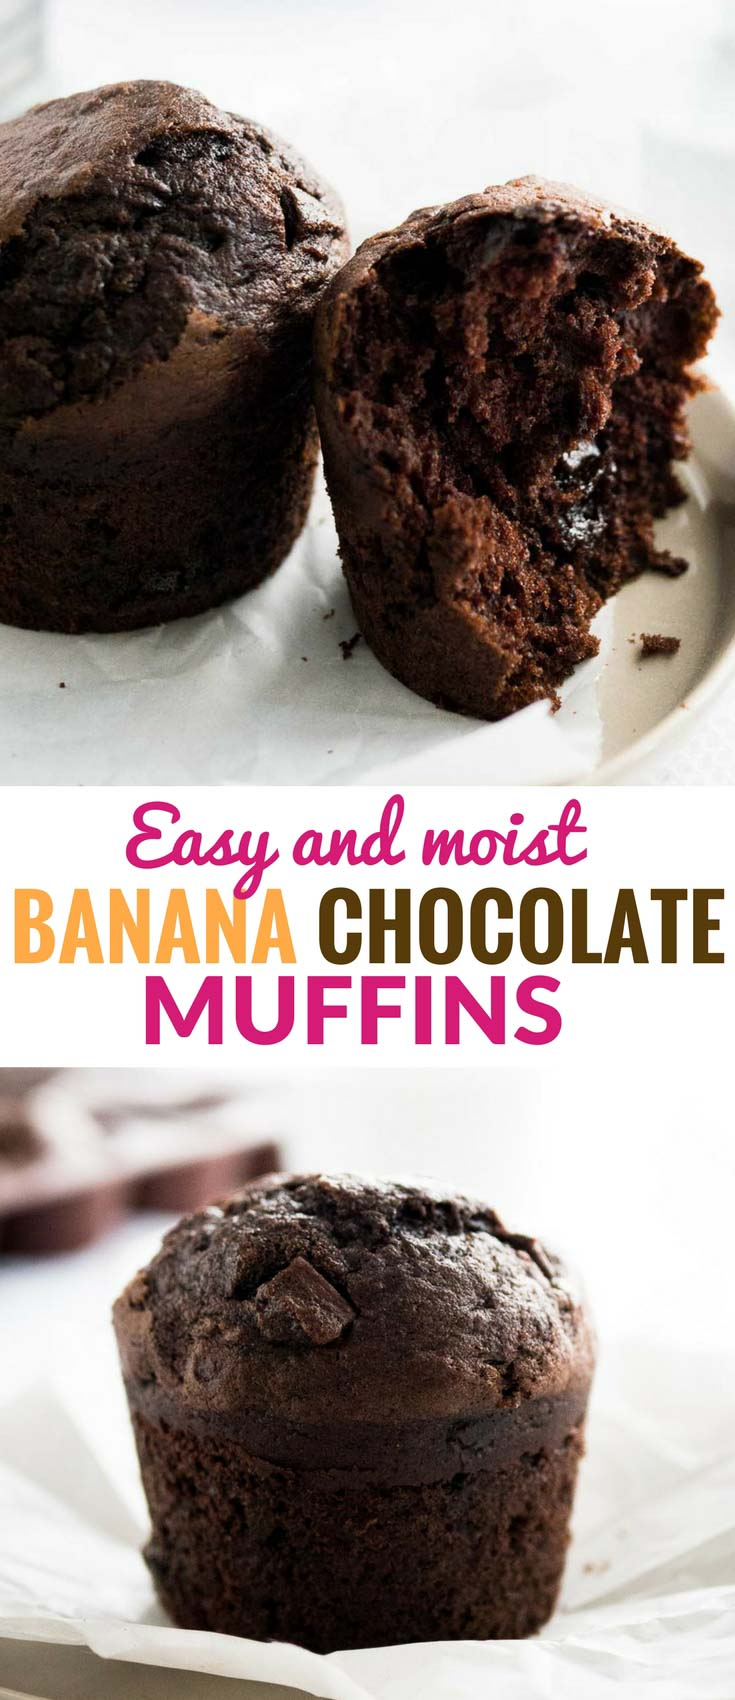 Chocolate Banana Muffins are so easy to make from scratch with just the right balance of chocolate and banana flavor! This easy bakery-style muffin recipe is loaded with chocolate and makes fluffy and moist muffins that make a great snack or breakfast.